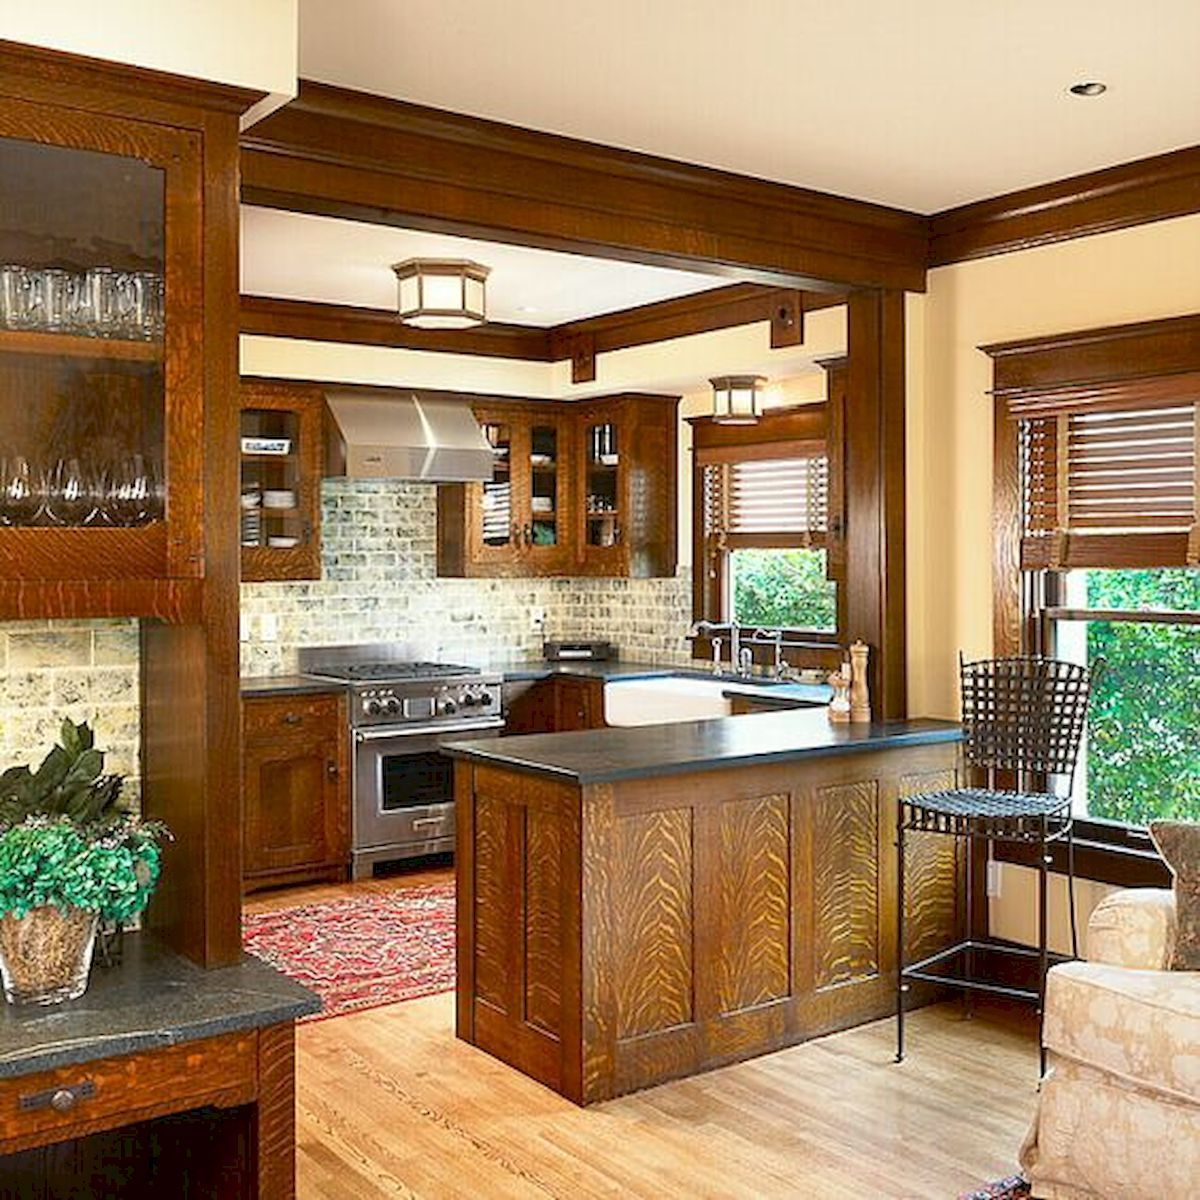 40 Awesome Craftsman Style Kitchen Design Ideas (12 #craftsmanstylehomes